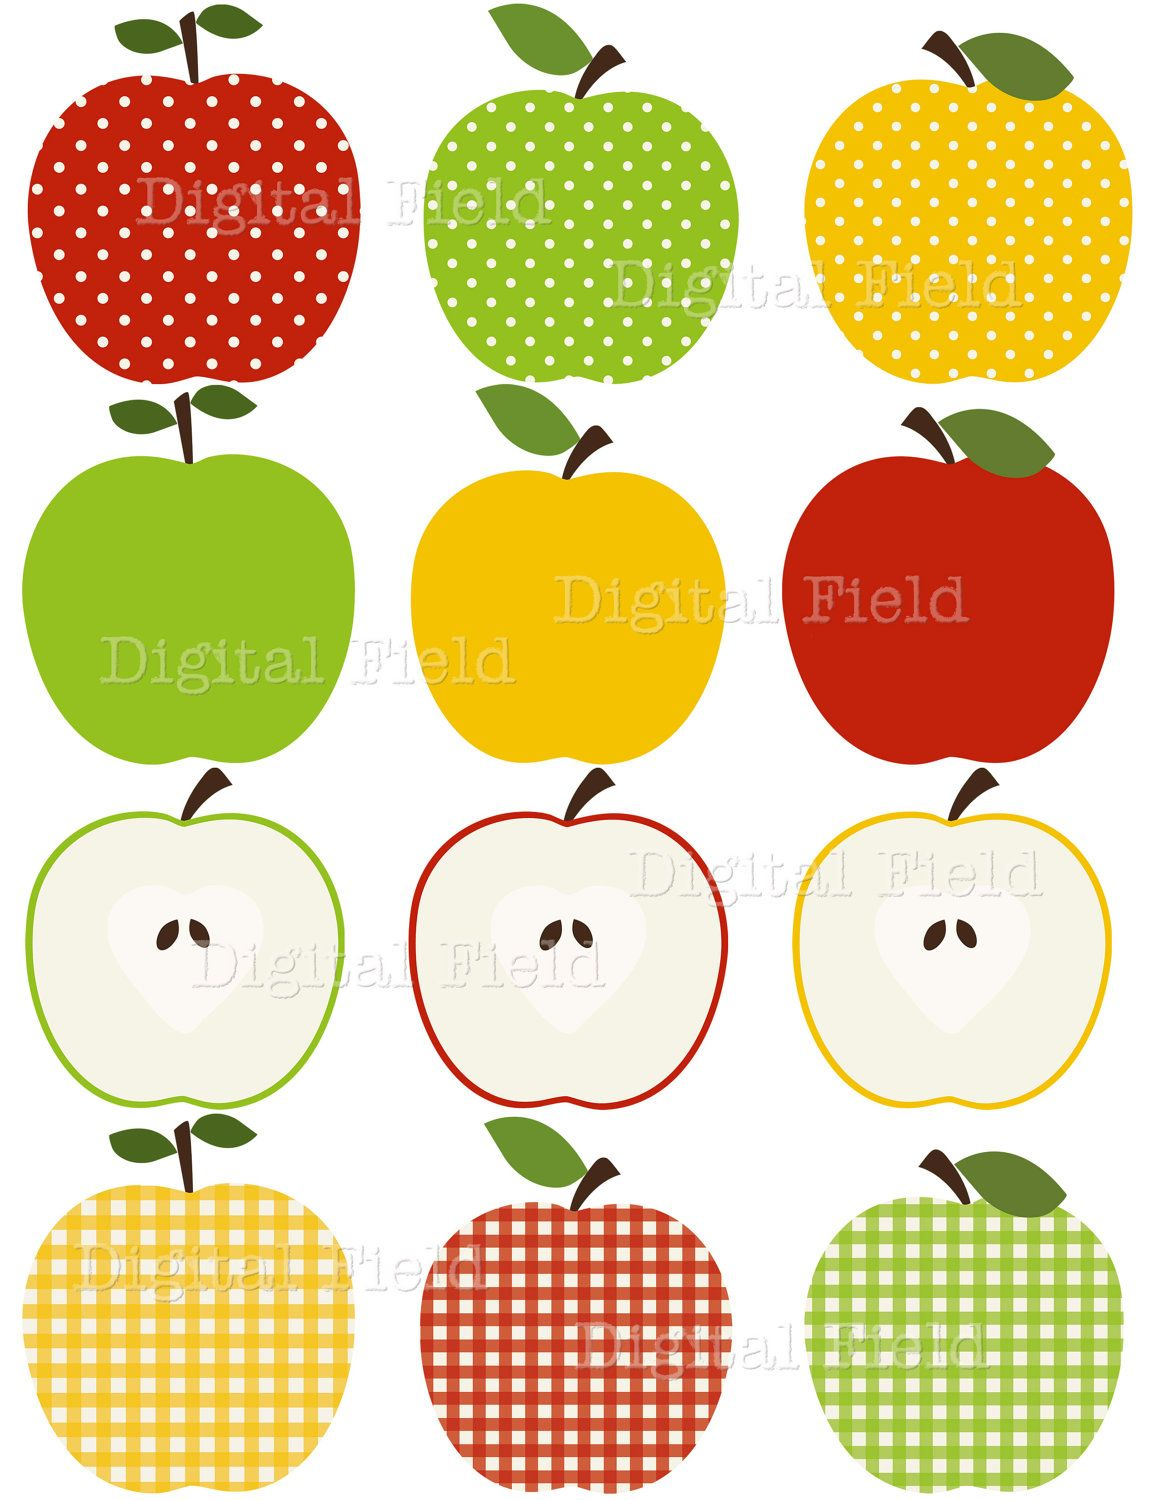 apple clip art set red green and yellow patterned digital clipart personal and small commercial use 2 50 via etsy  [ 1159 x 1500 Pixel ]